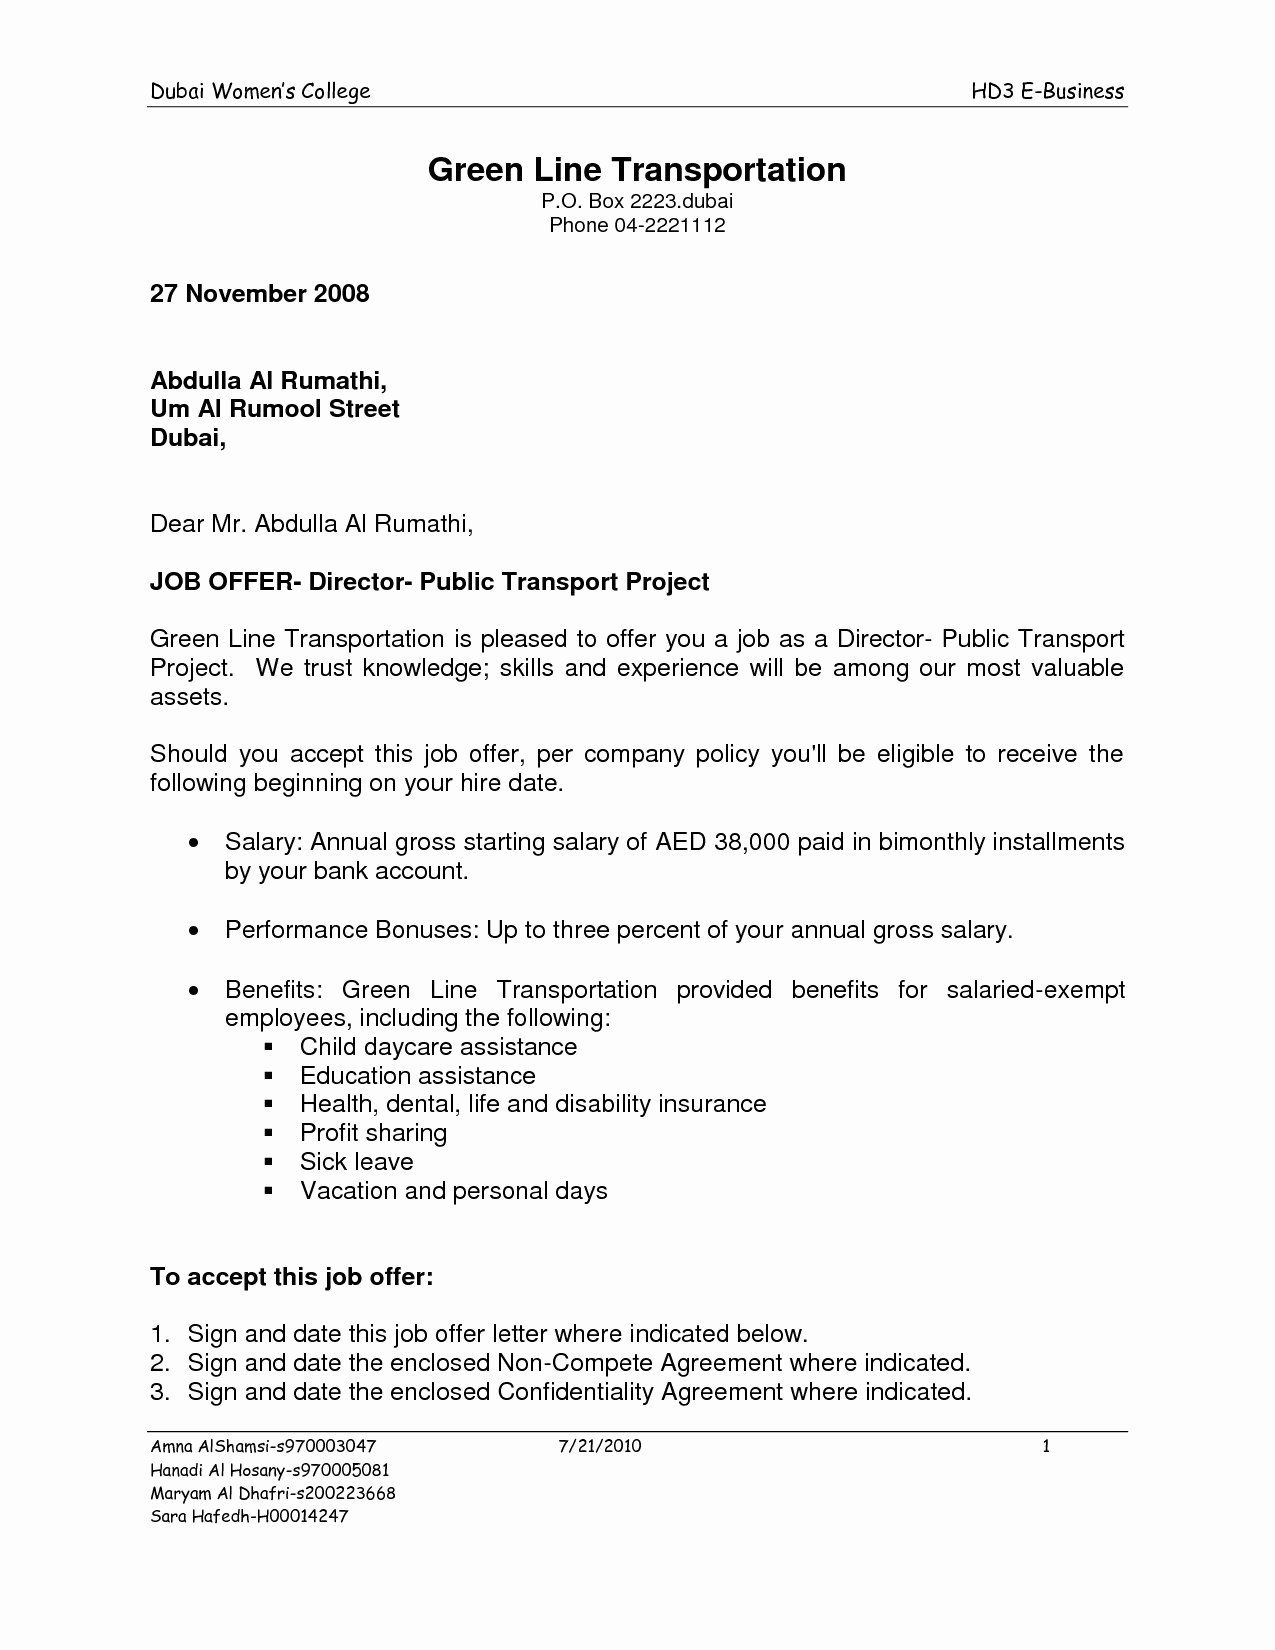 Counter Offer Letter Template Luxury 12 13 Counter Offer Letter Samples Letter Template Word Letter Templates Lettering Sample appeal letter for unemployment benefits